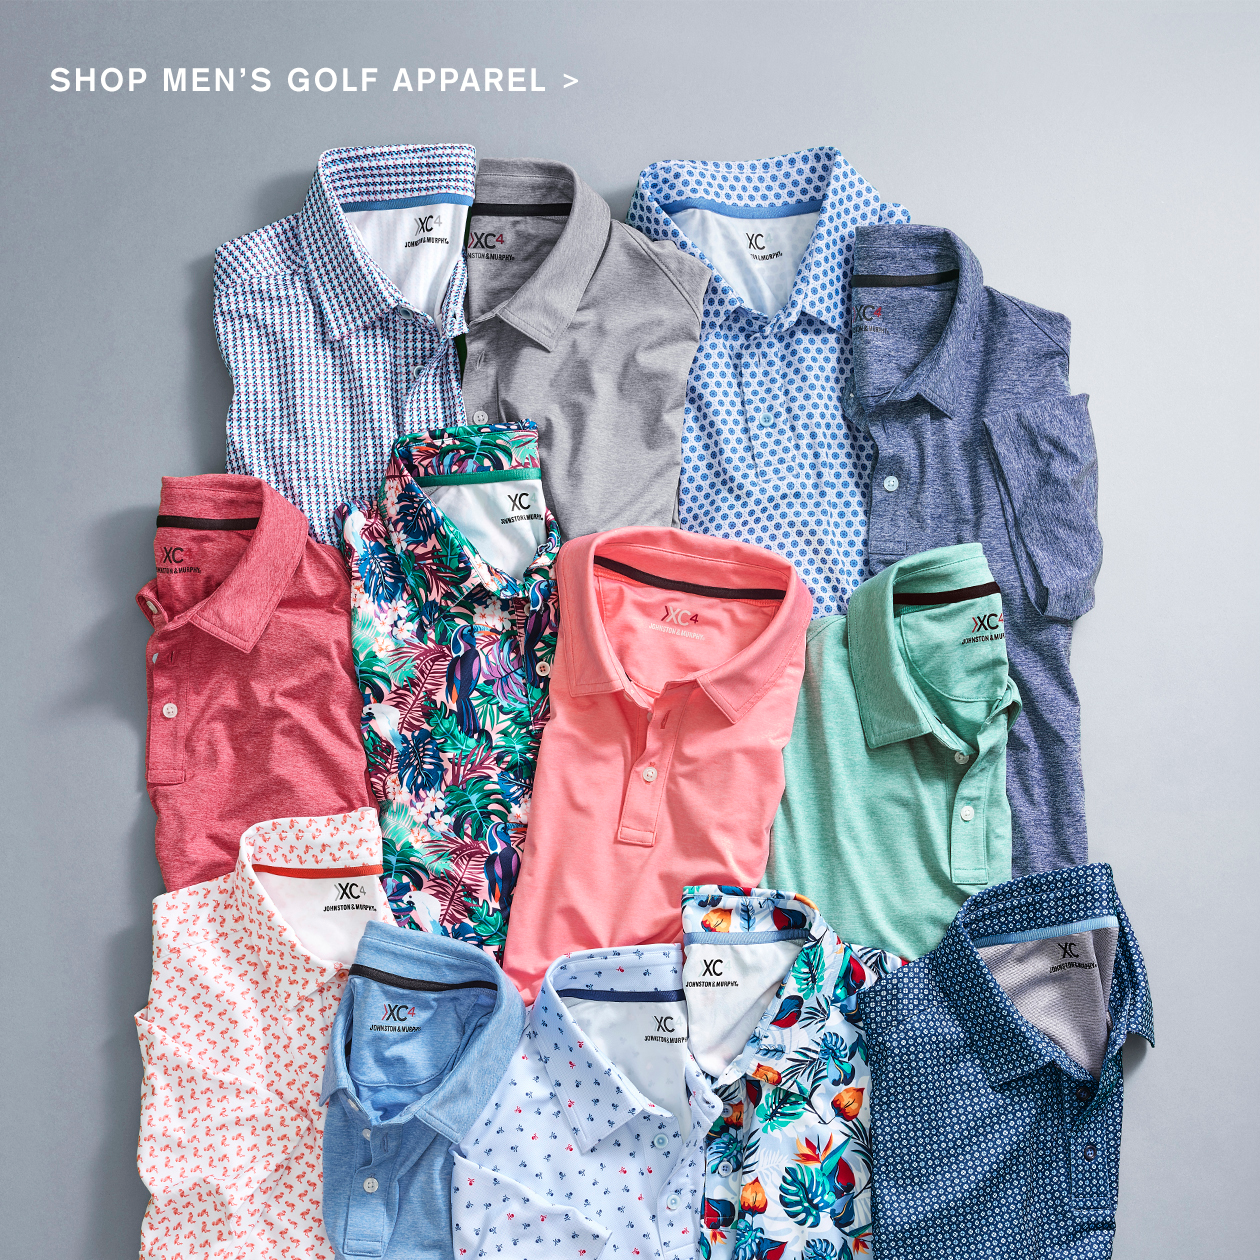 Shop Men's Golf Apparel